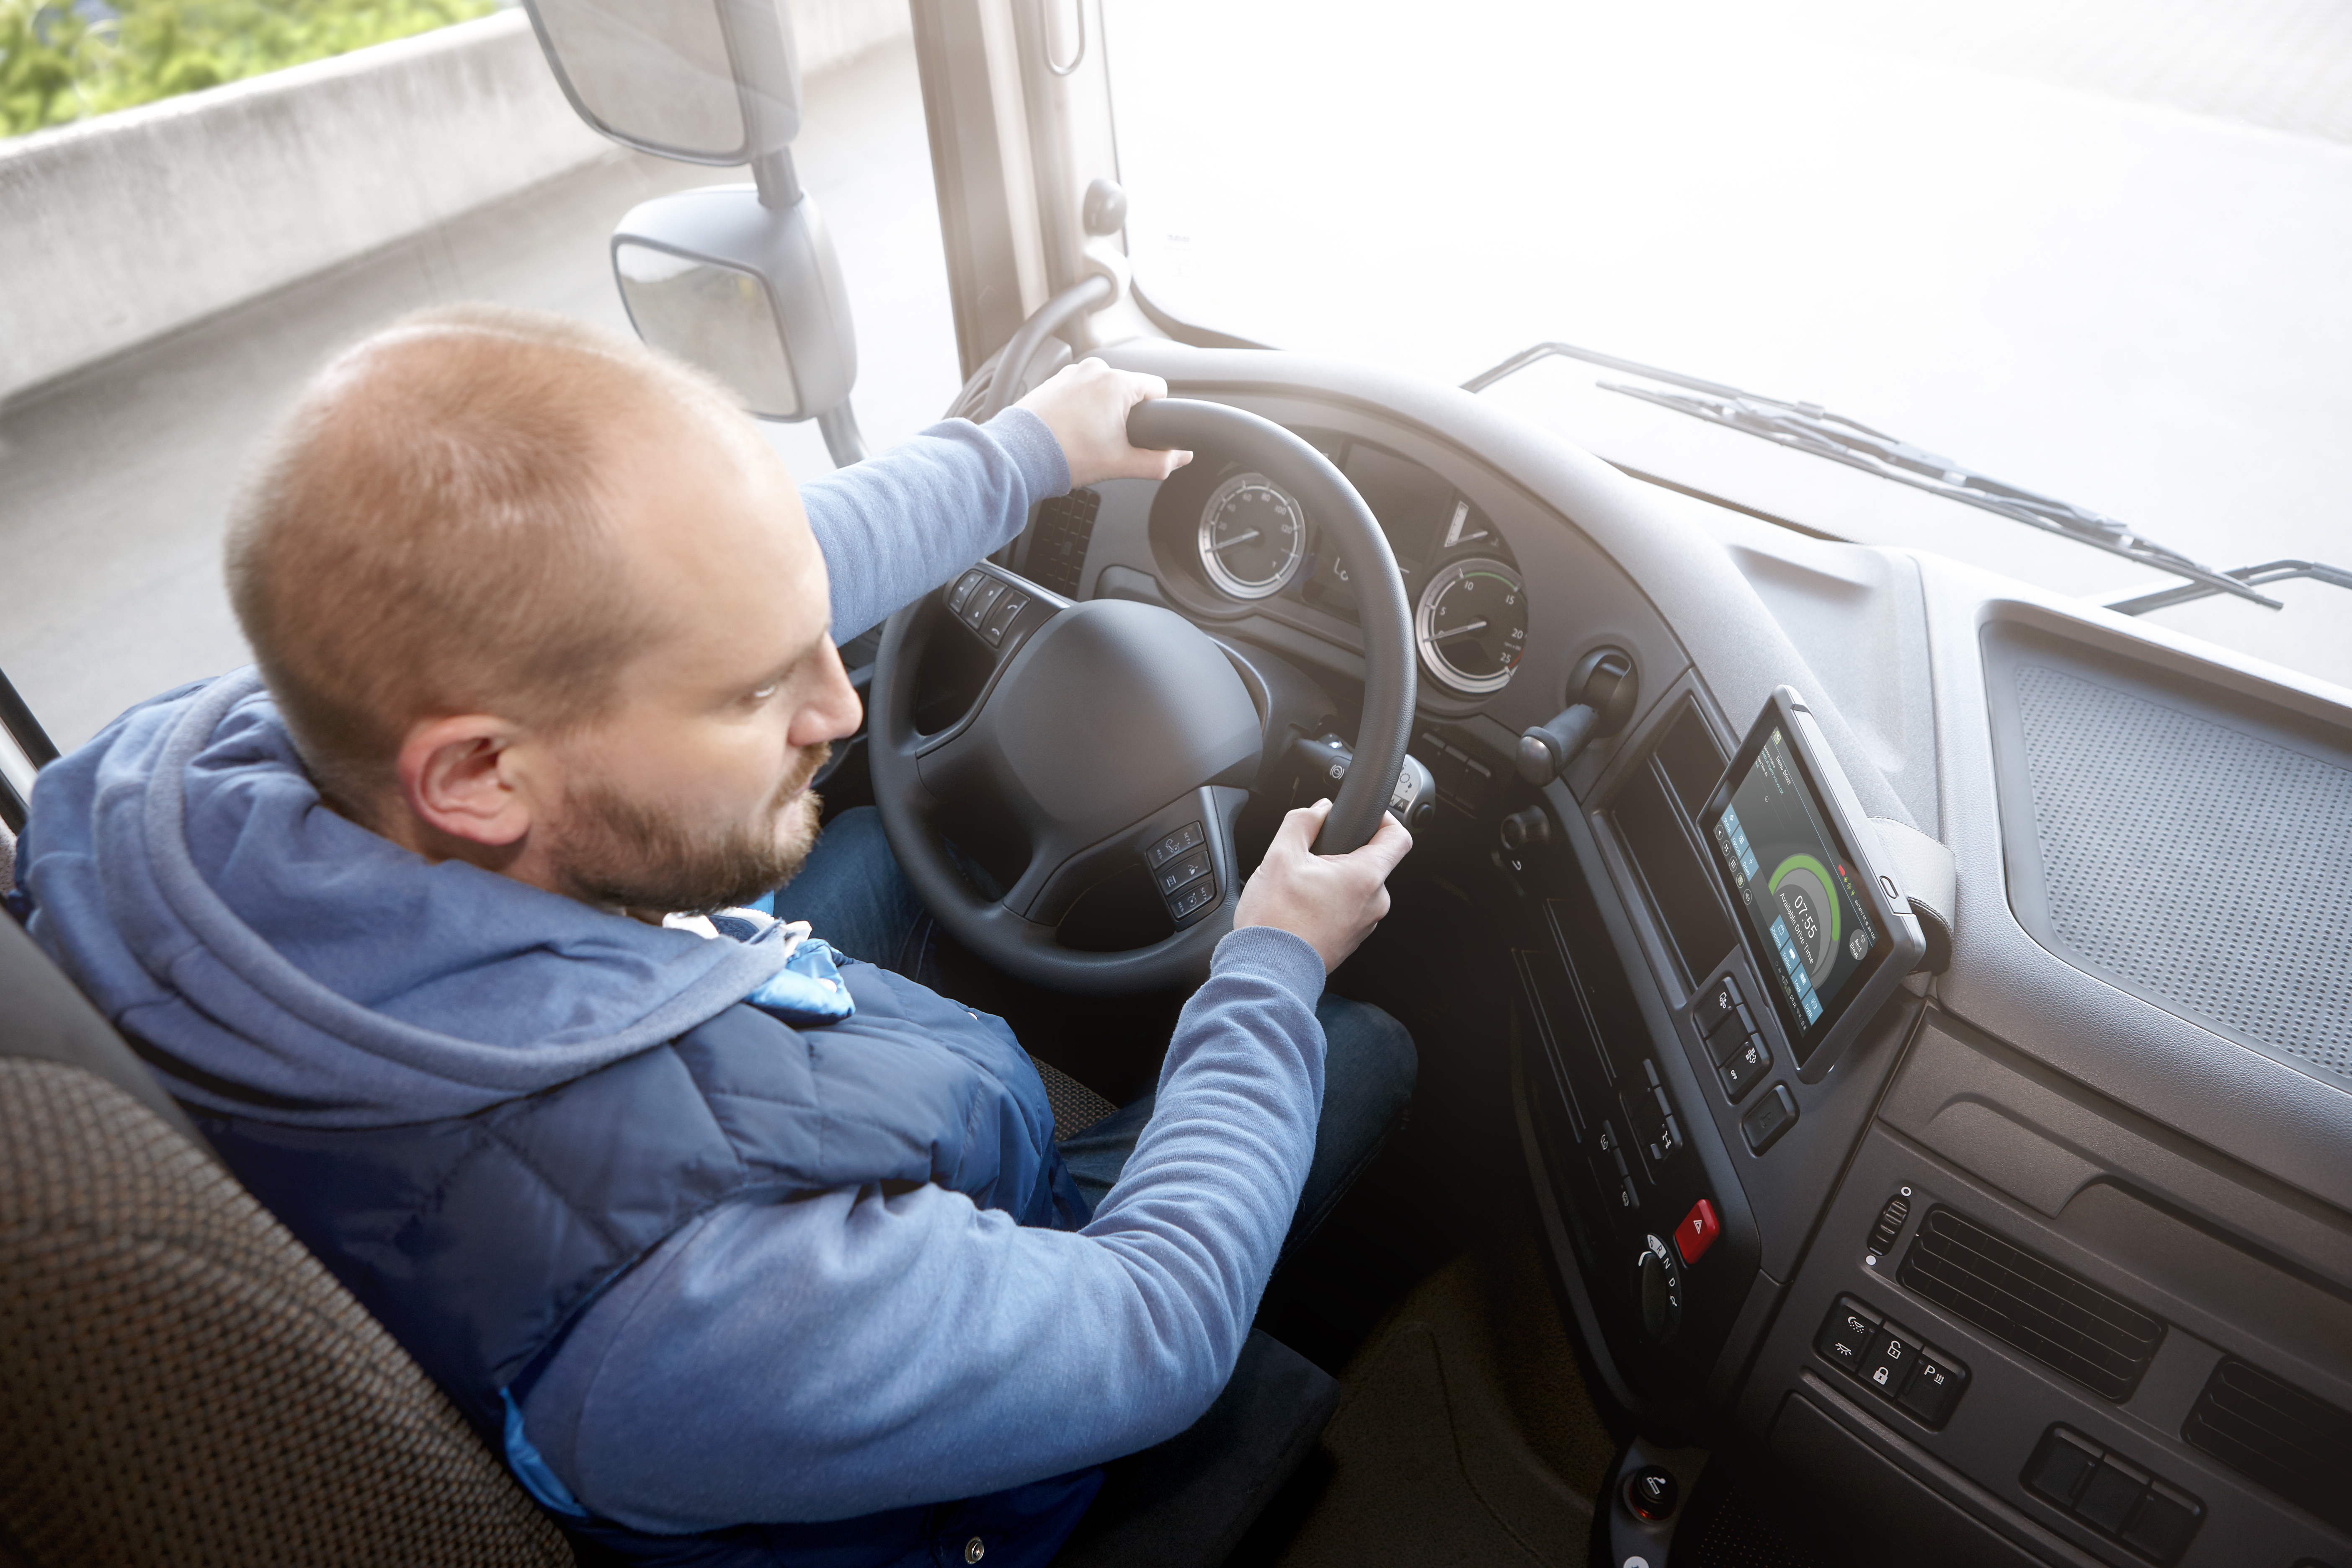 How the Right Training Can Help Promote Trucking as a Profession